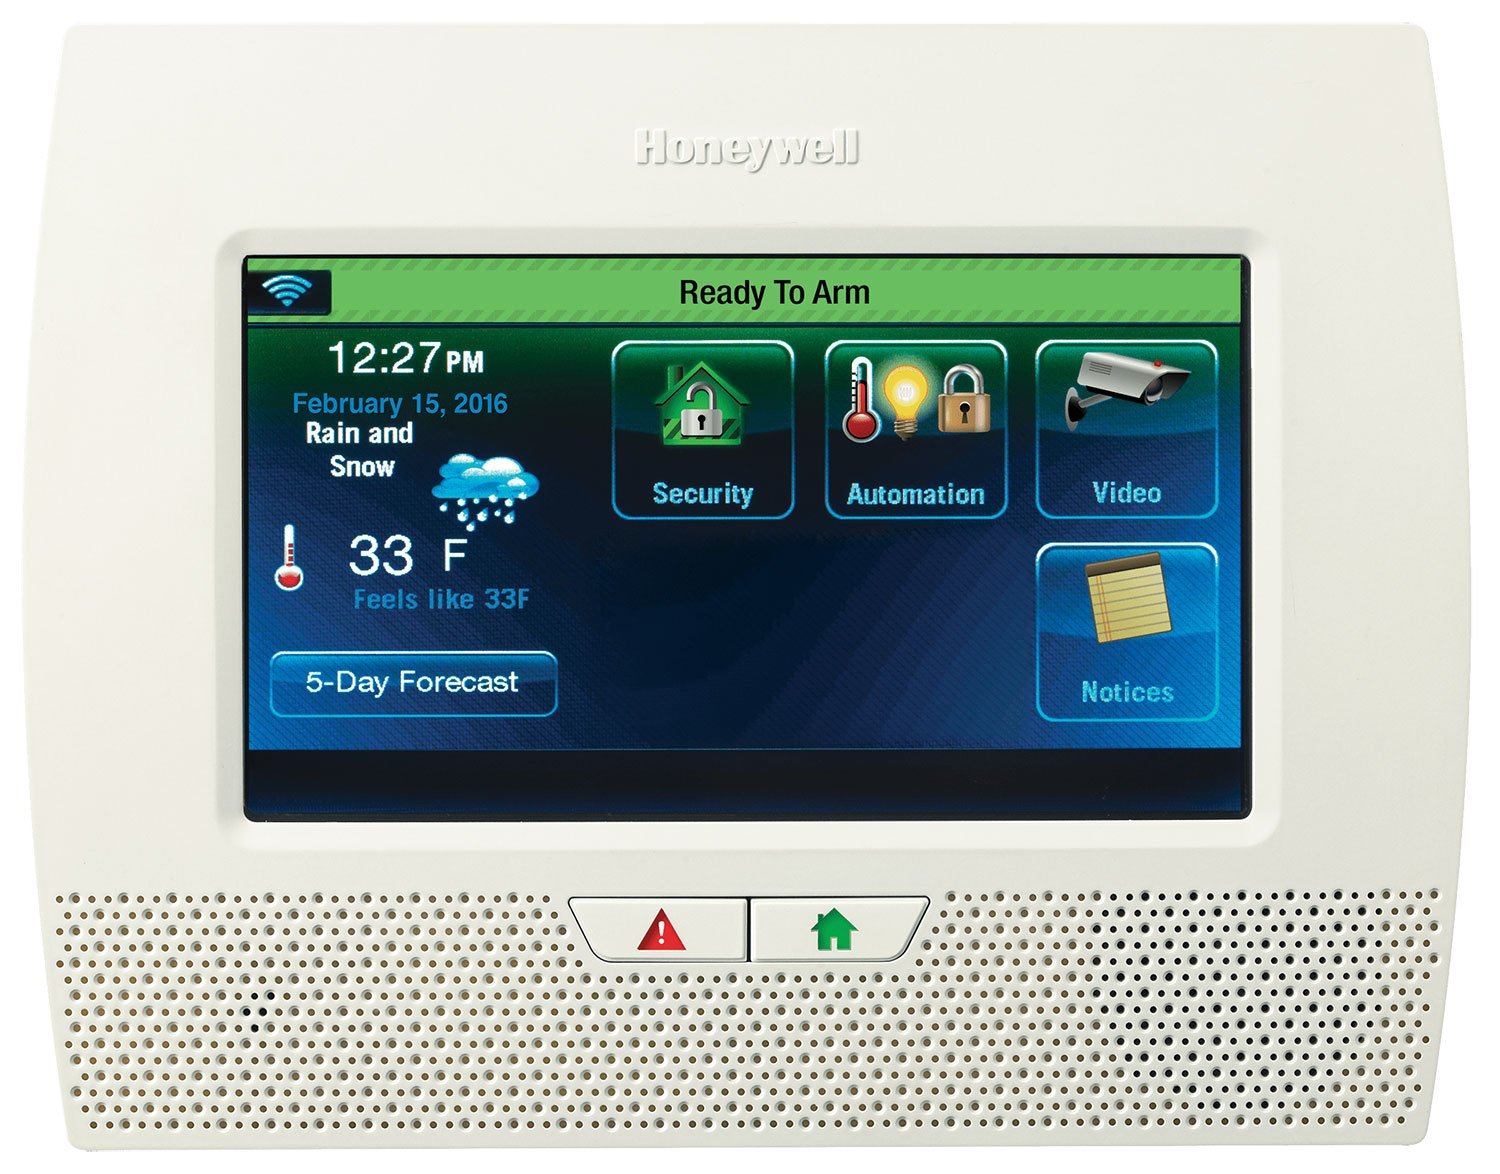 Honeywell automation systems dashboard